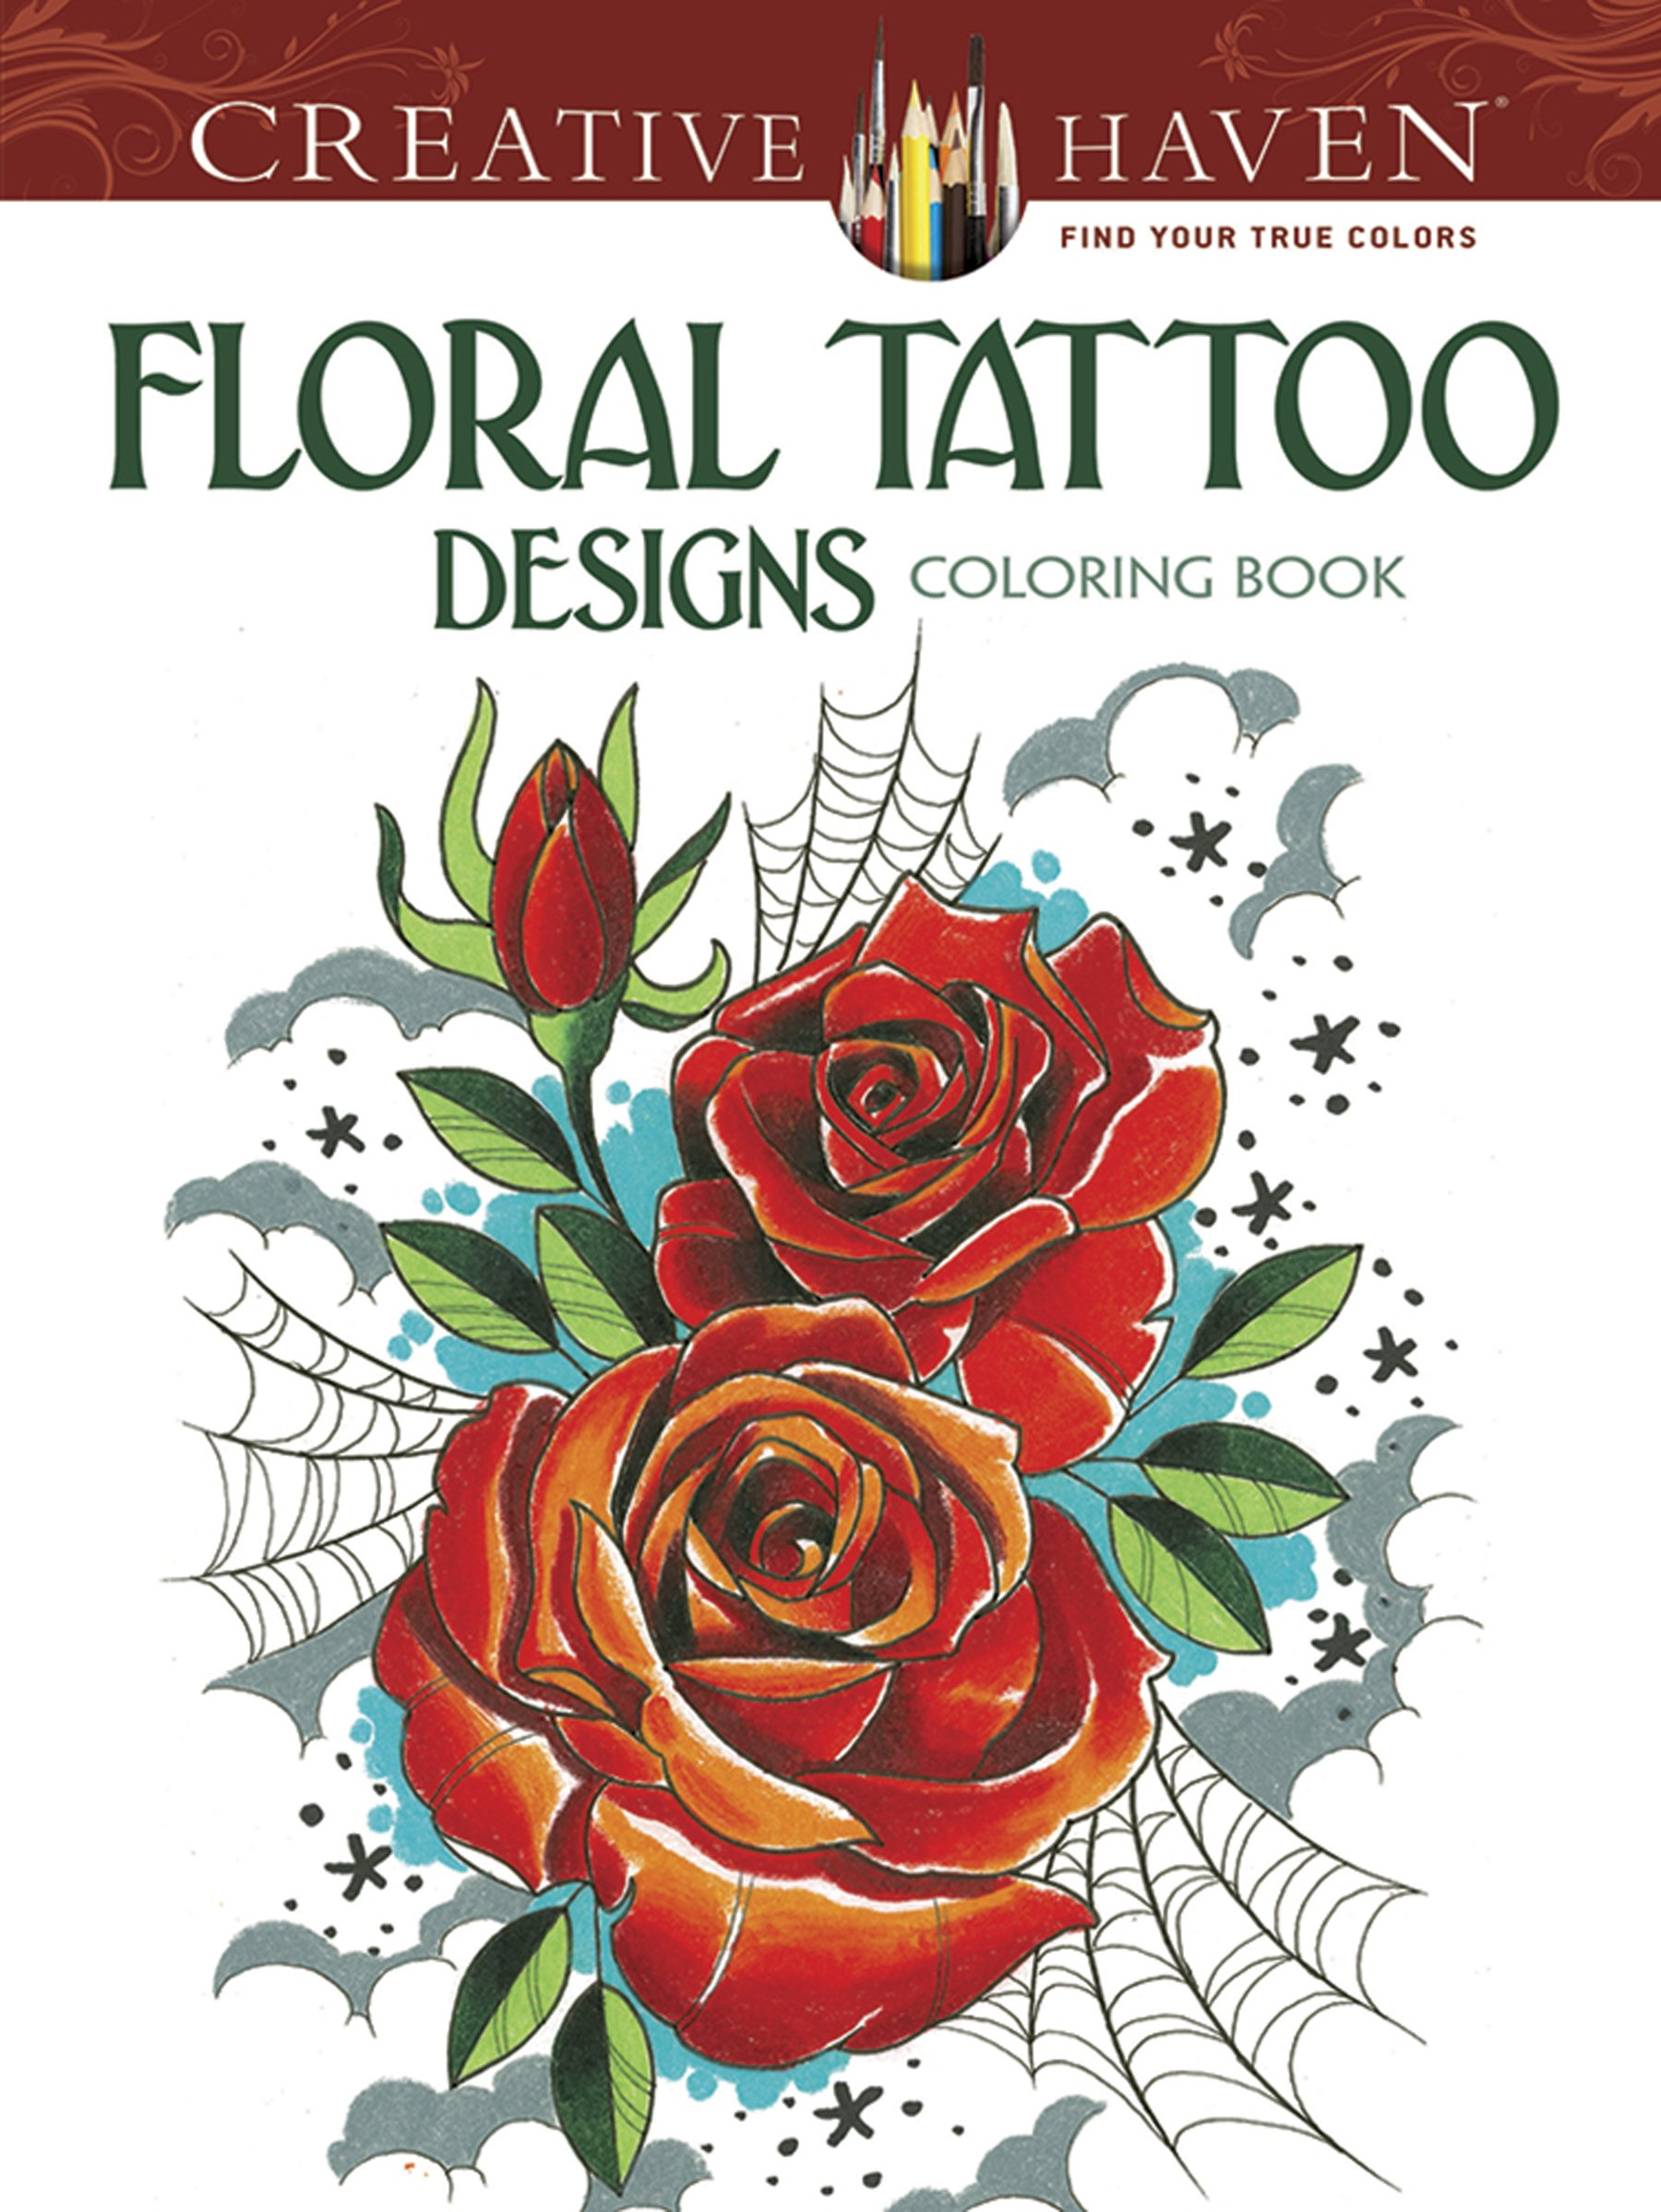 Amazon.com: Creative Haven Floral Tattoo Designs Coloring Book ...